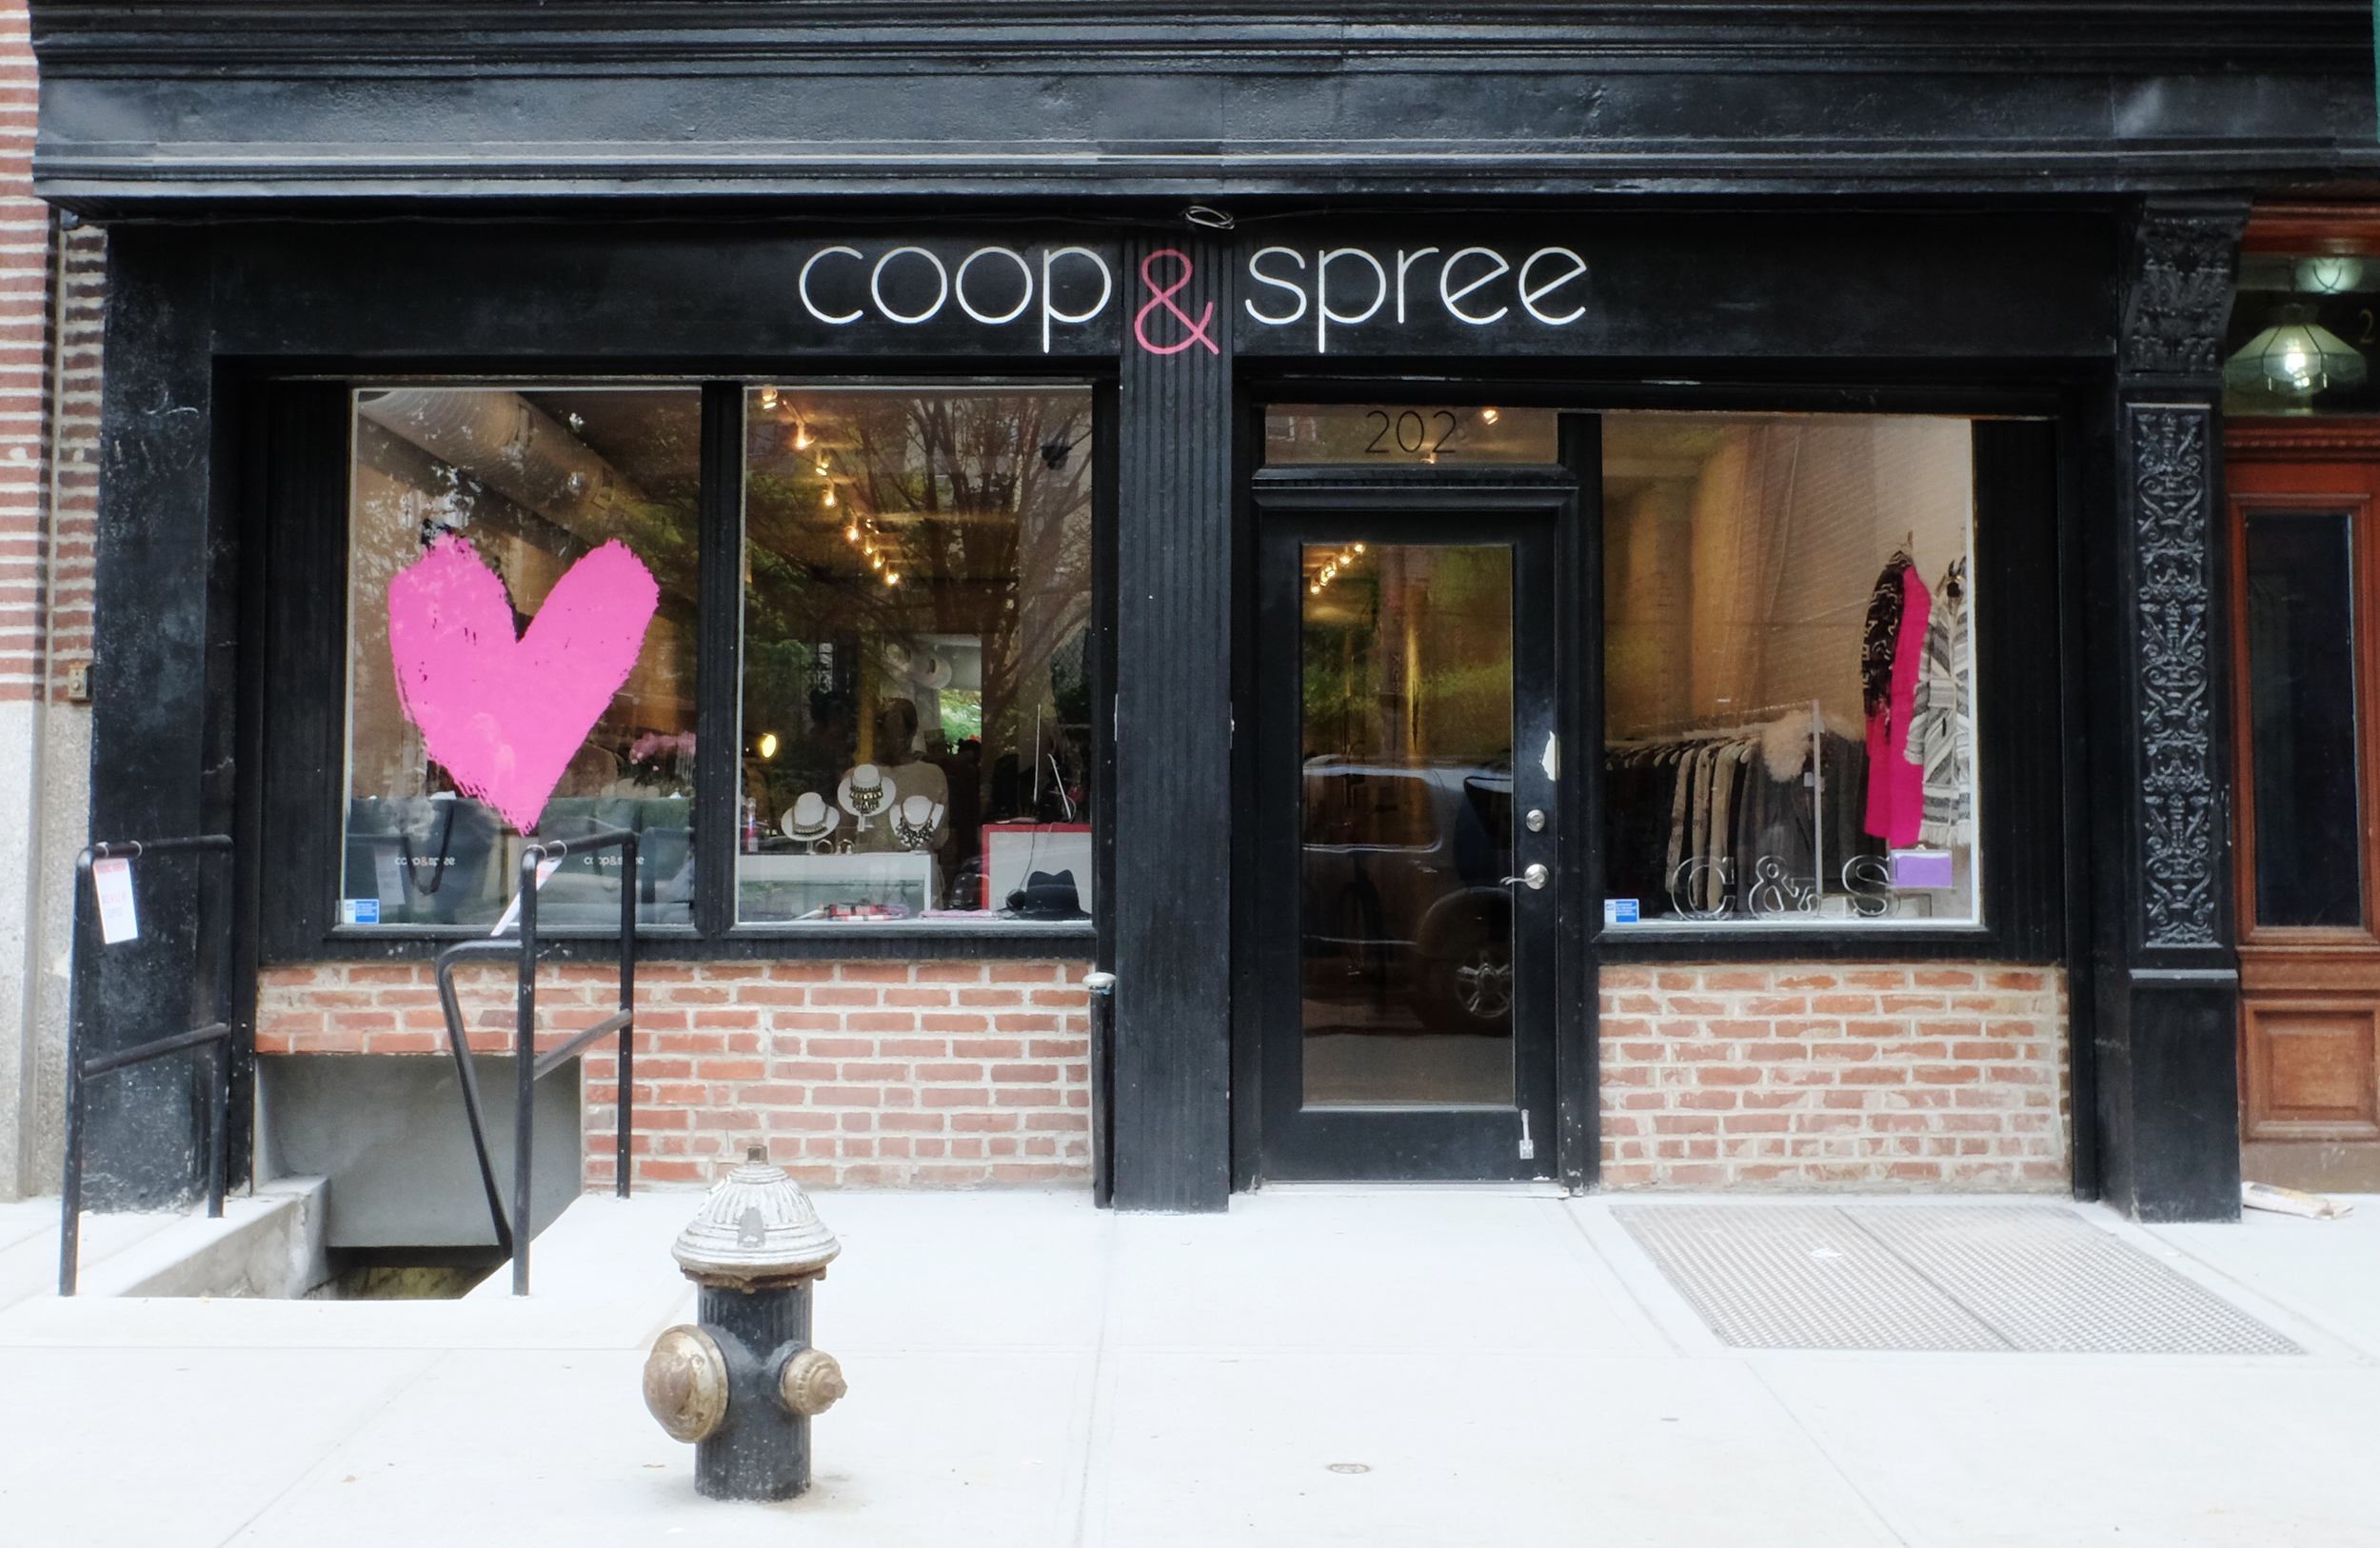 Coop & Spree  / 202 Elizabeth Street. New York, NYC 10012 / 917-475-1723  They basically have the best denim selection (Mother, AG, One Teaspoon) and carry some pretty cool clothes (Milly, Helmut Lang, LNA, Kempner).